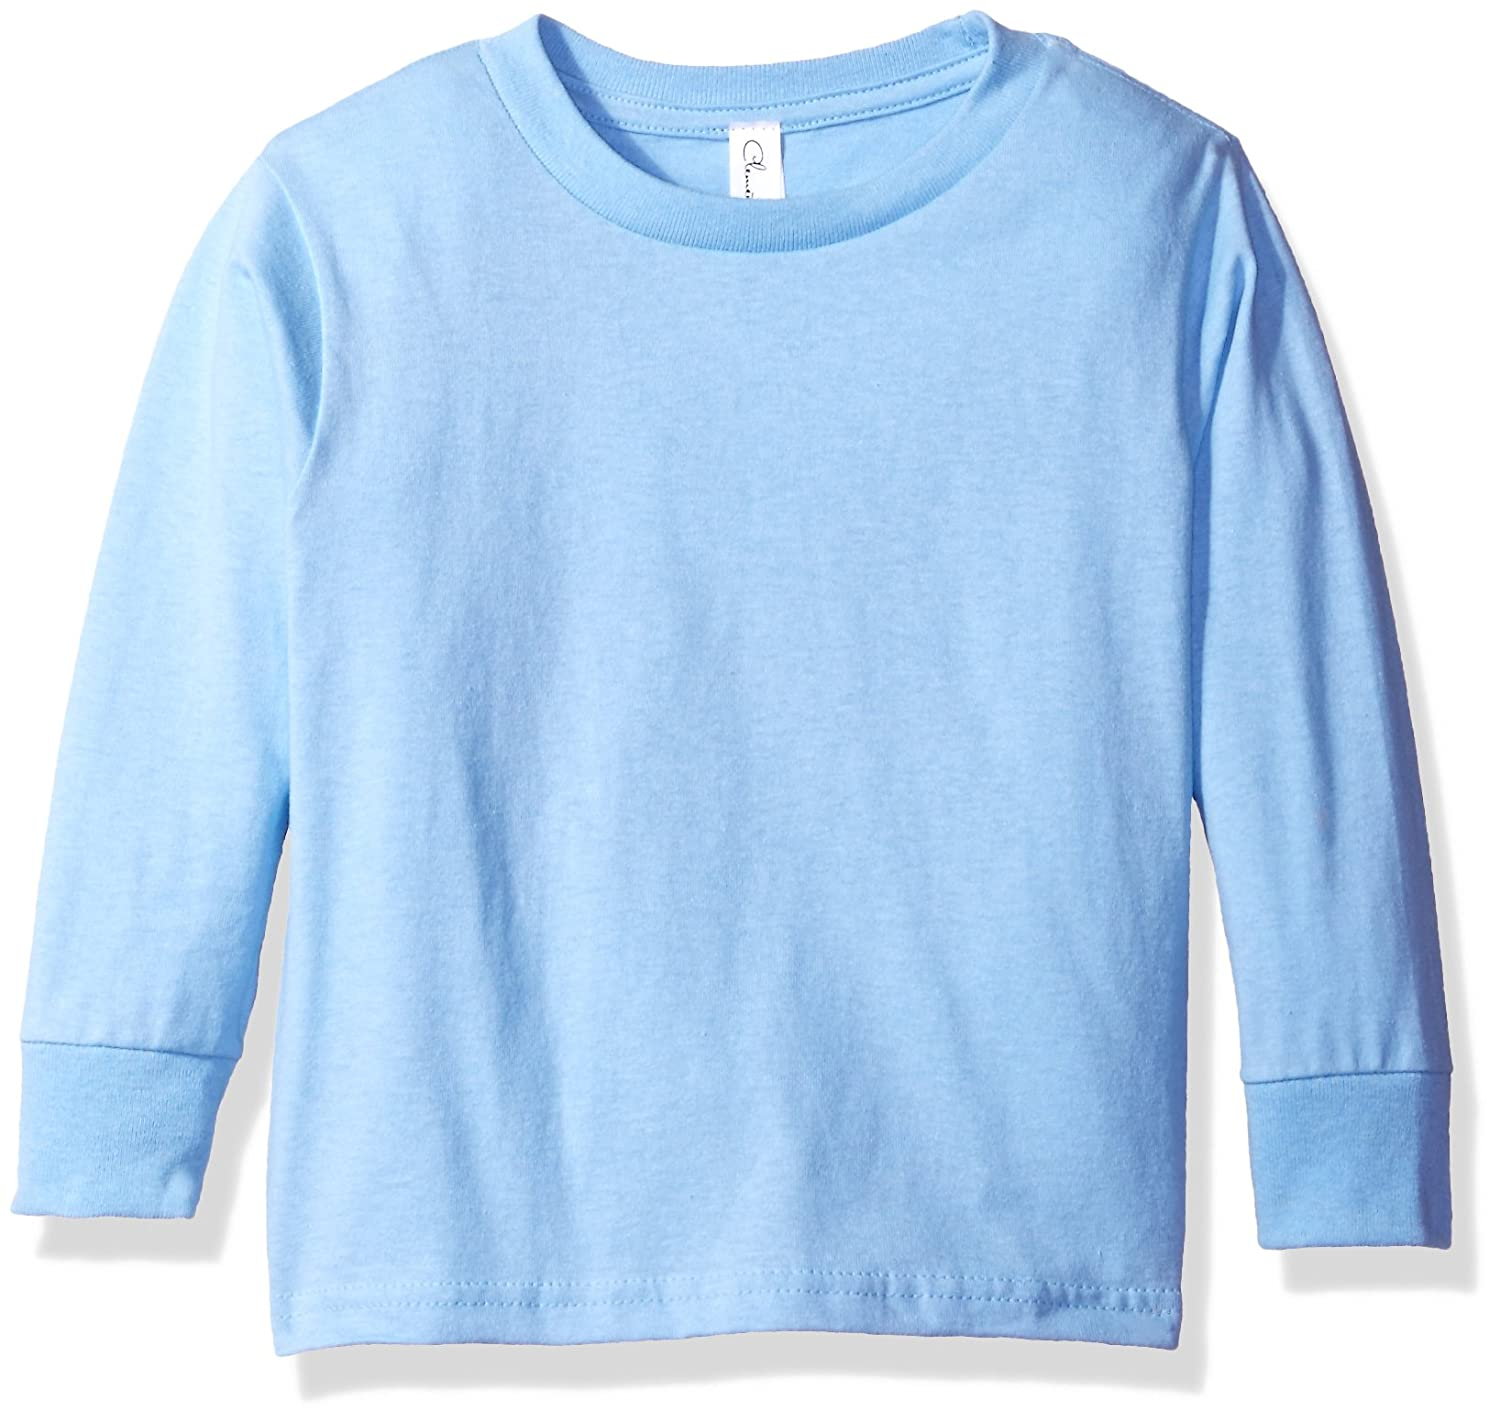 Clementine Apparel Girls Long Sleeve T-Shirt Undershirt Tees Assorted Colors